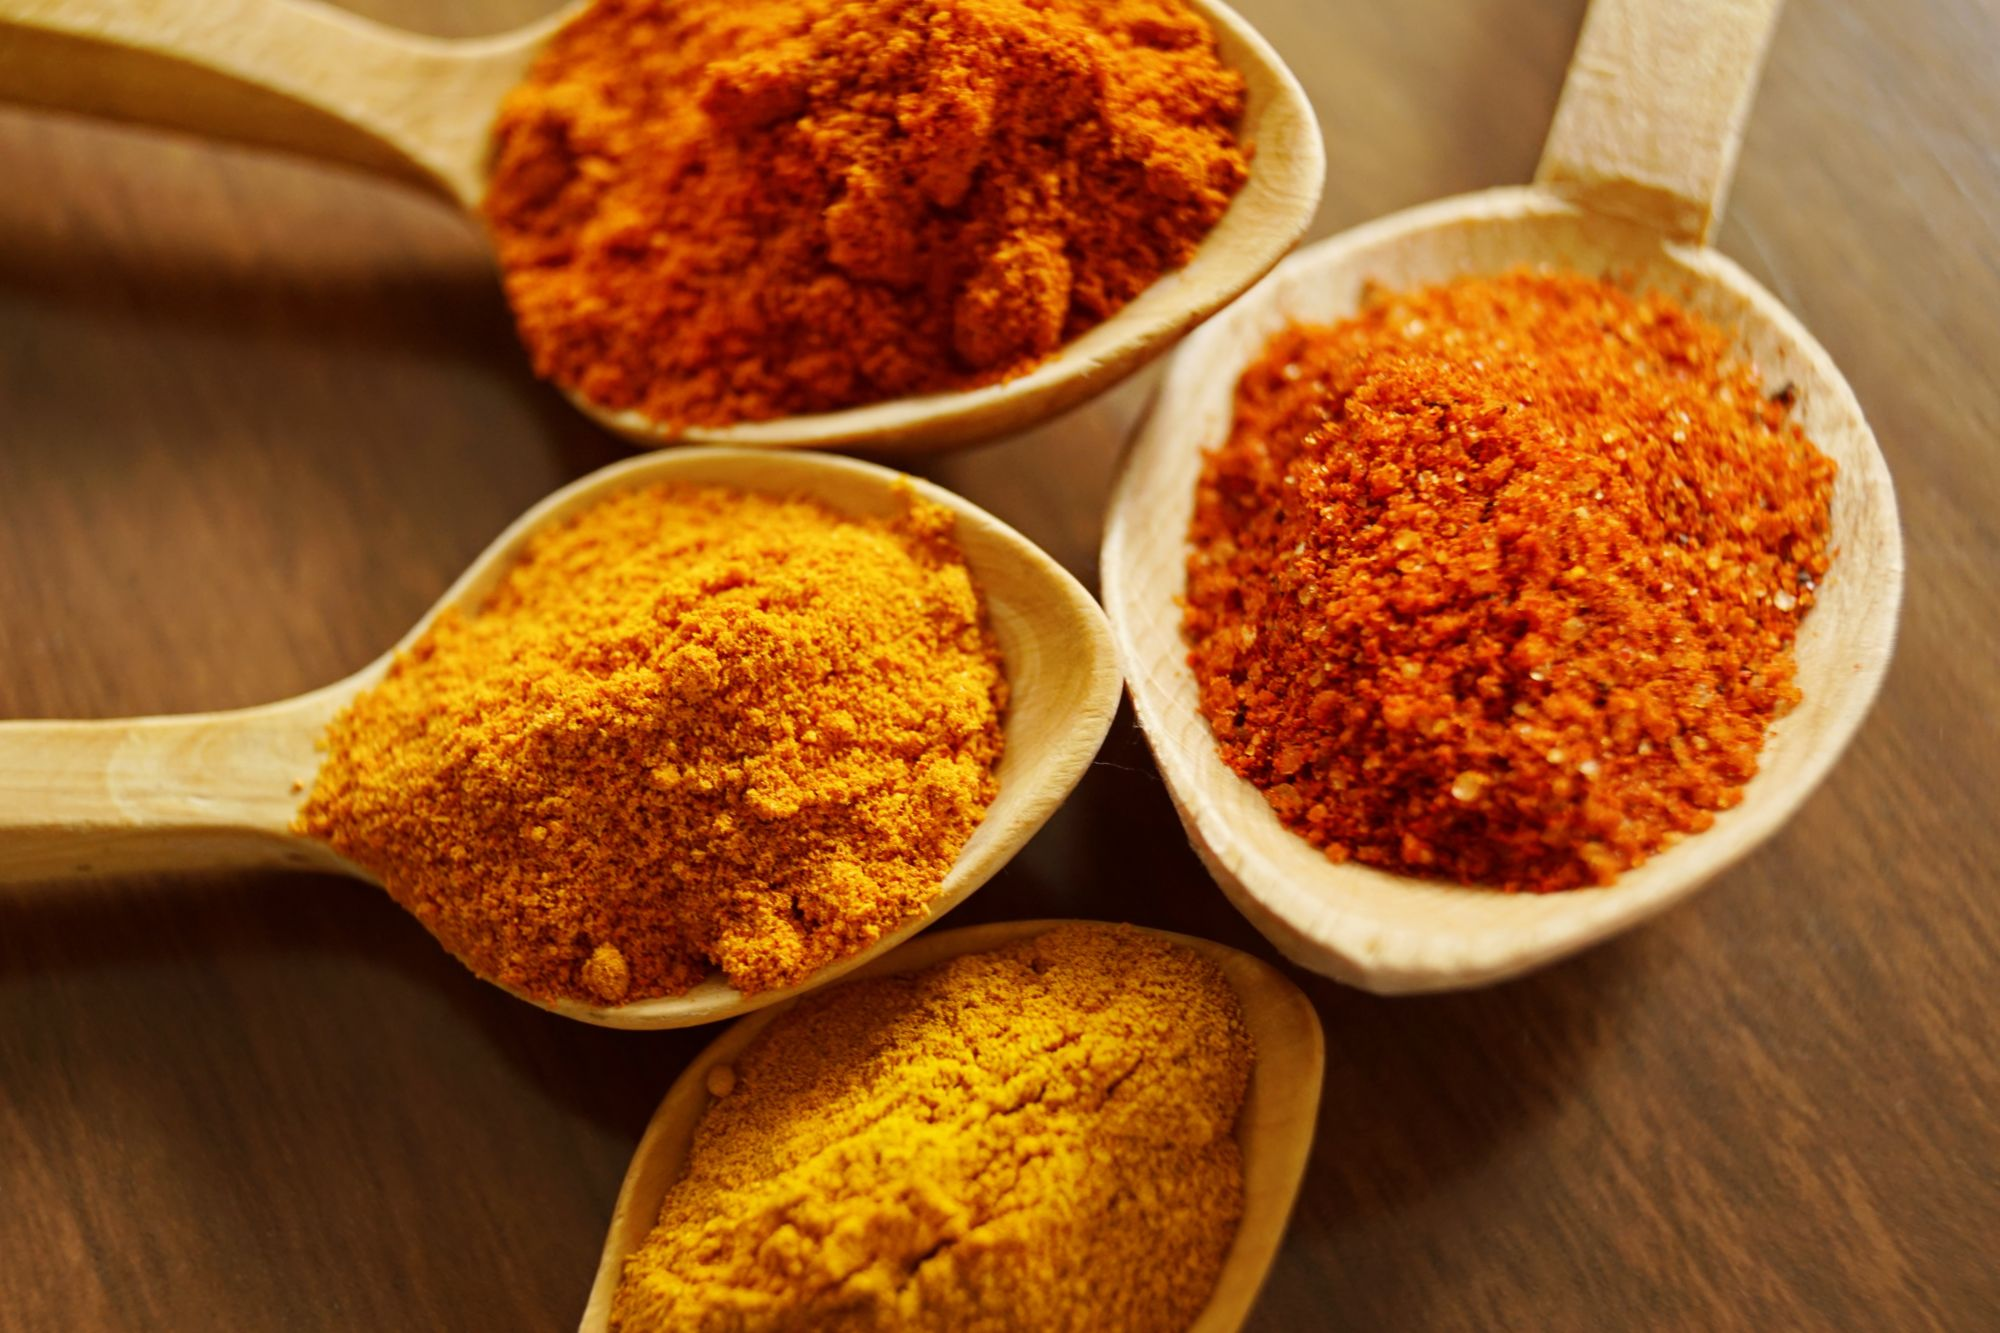 Western News - 'Miracle' spice turmeric 'no better than nothing': study